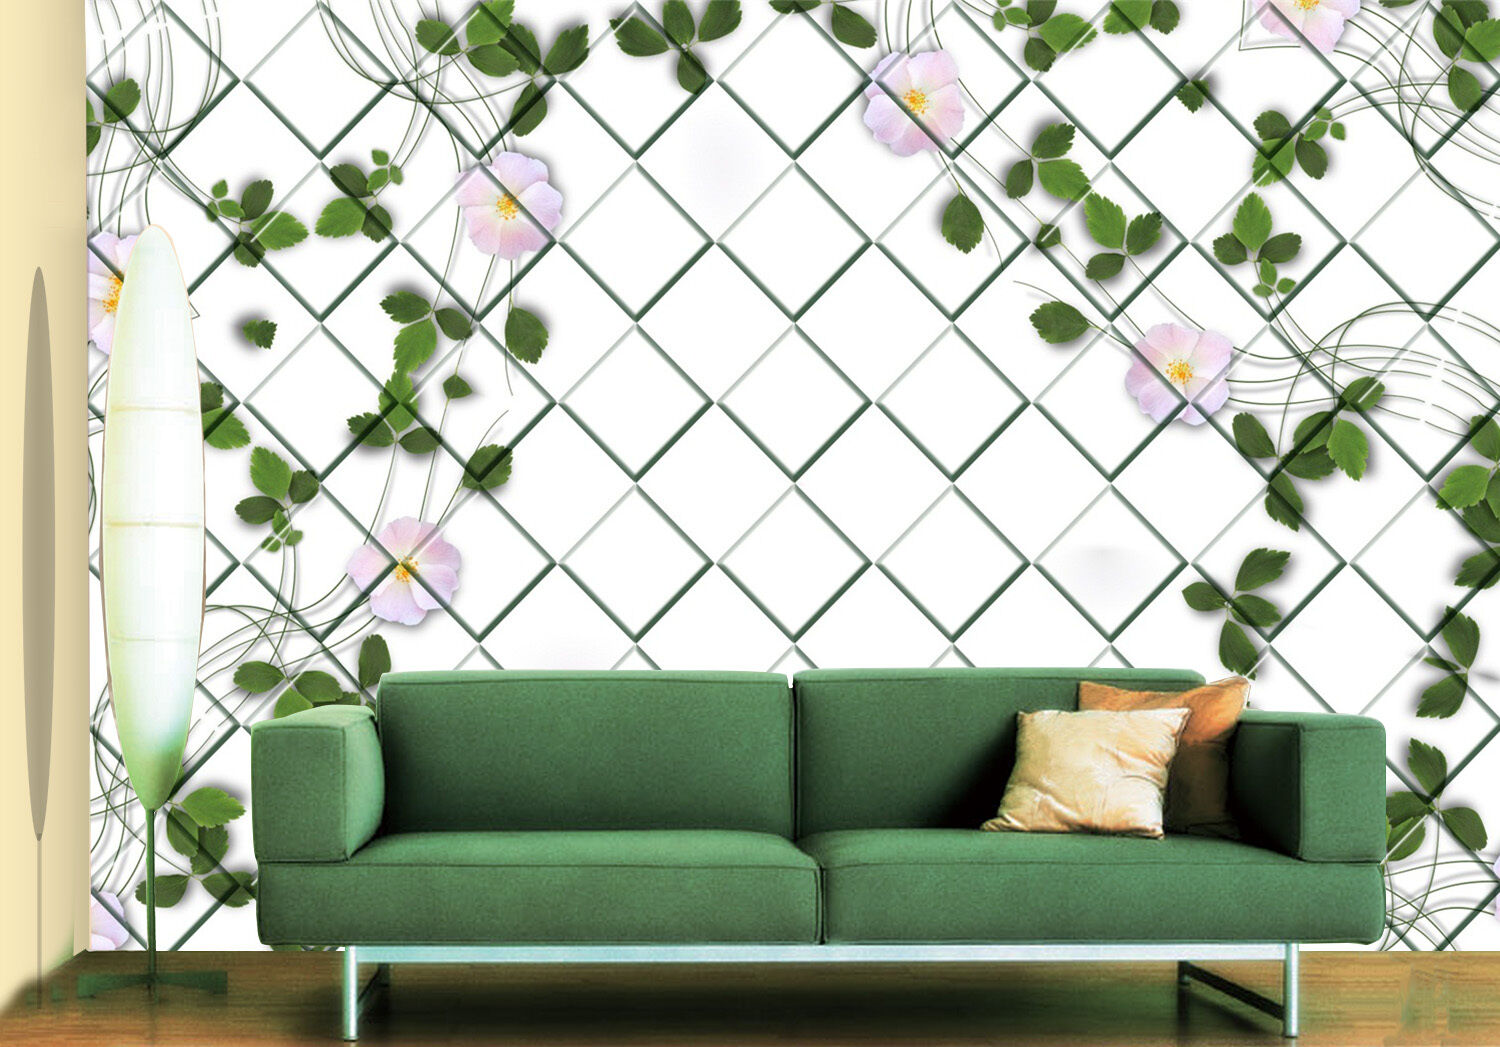 3D Flowers vines grid Wall Paper Print Decal Wall Deco Indoor wall Mural